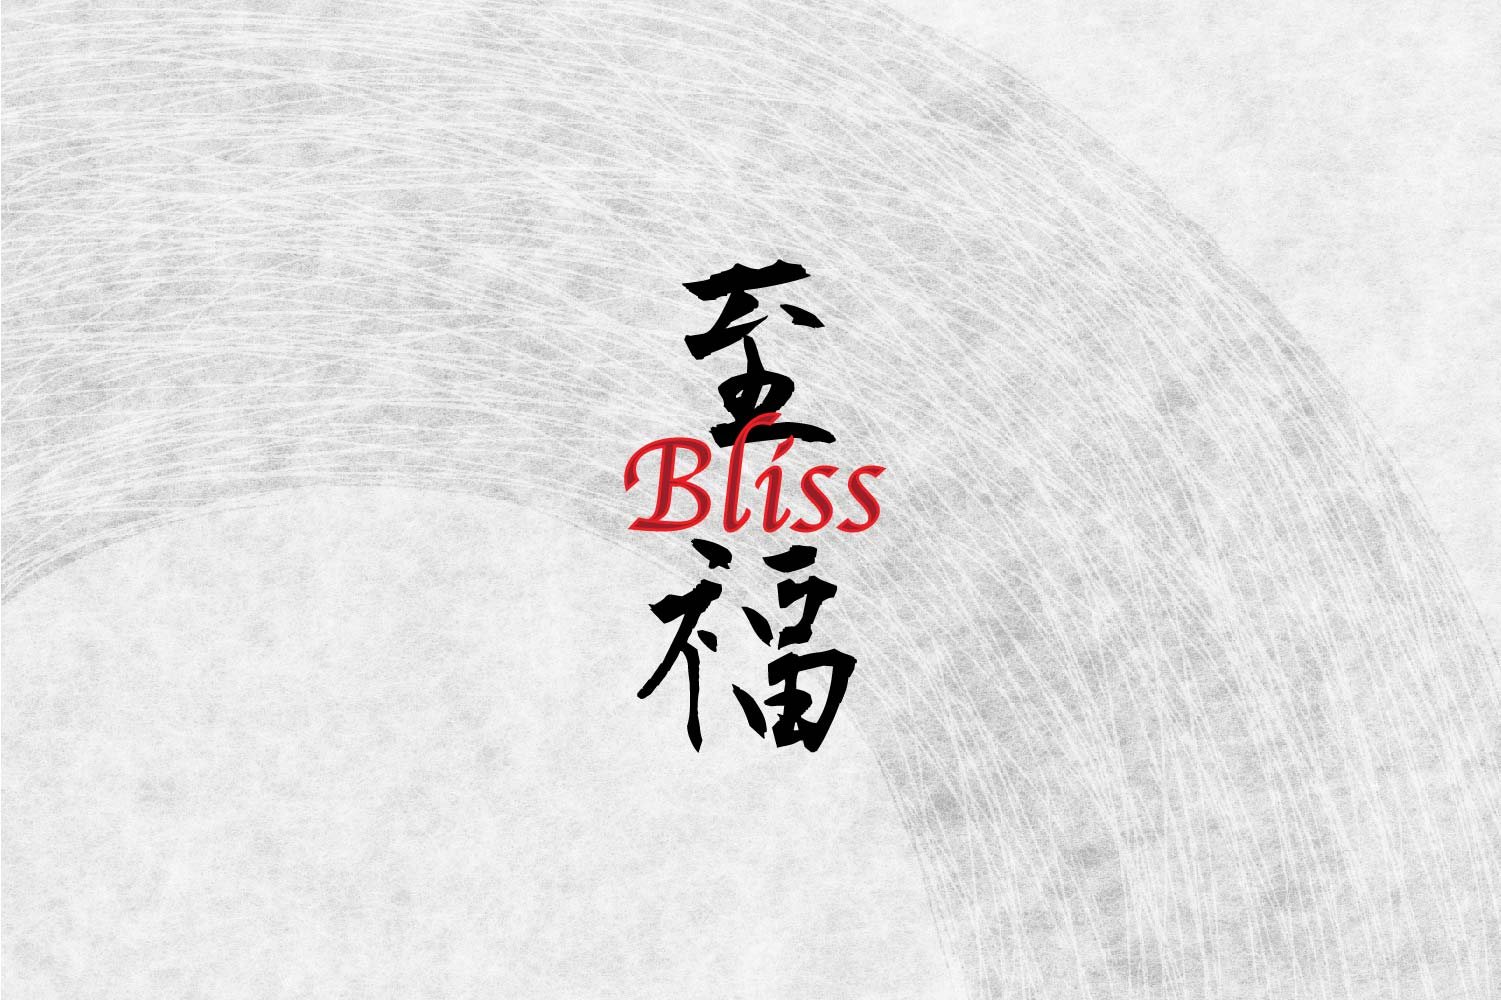 Happiness Bliss in Japanese Kanji Symbols for Tattoo